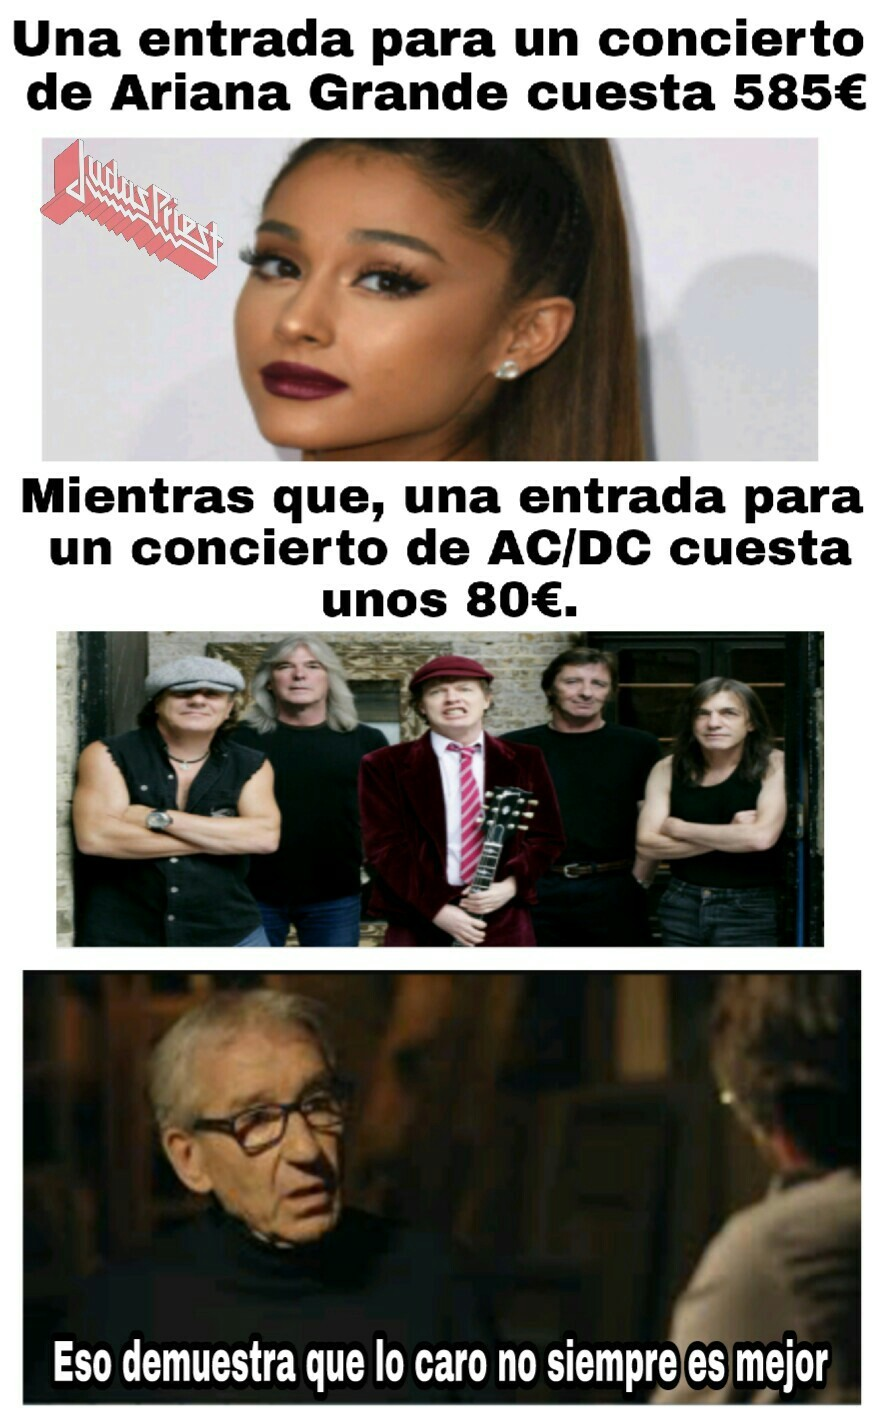 Larga vida al rock - meme